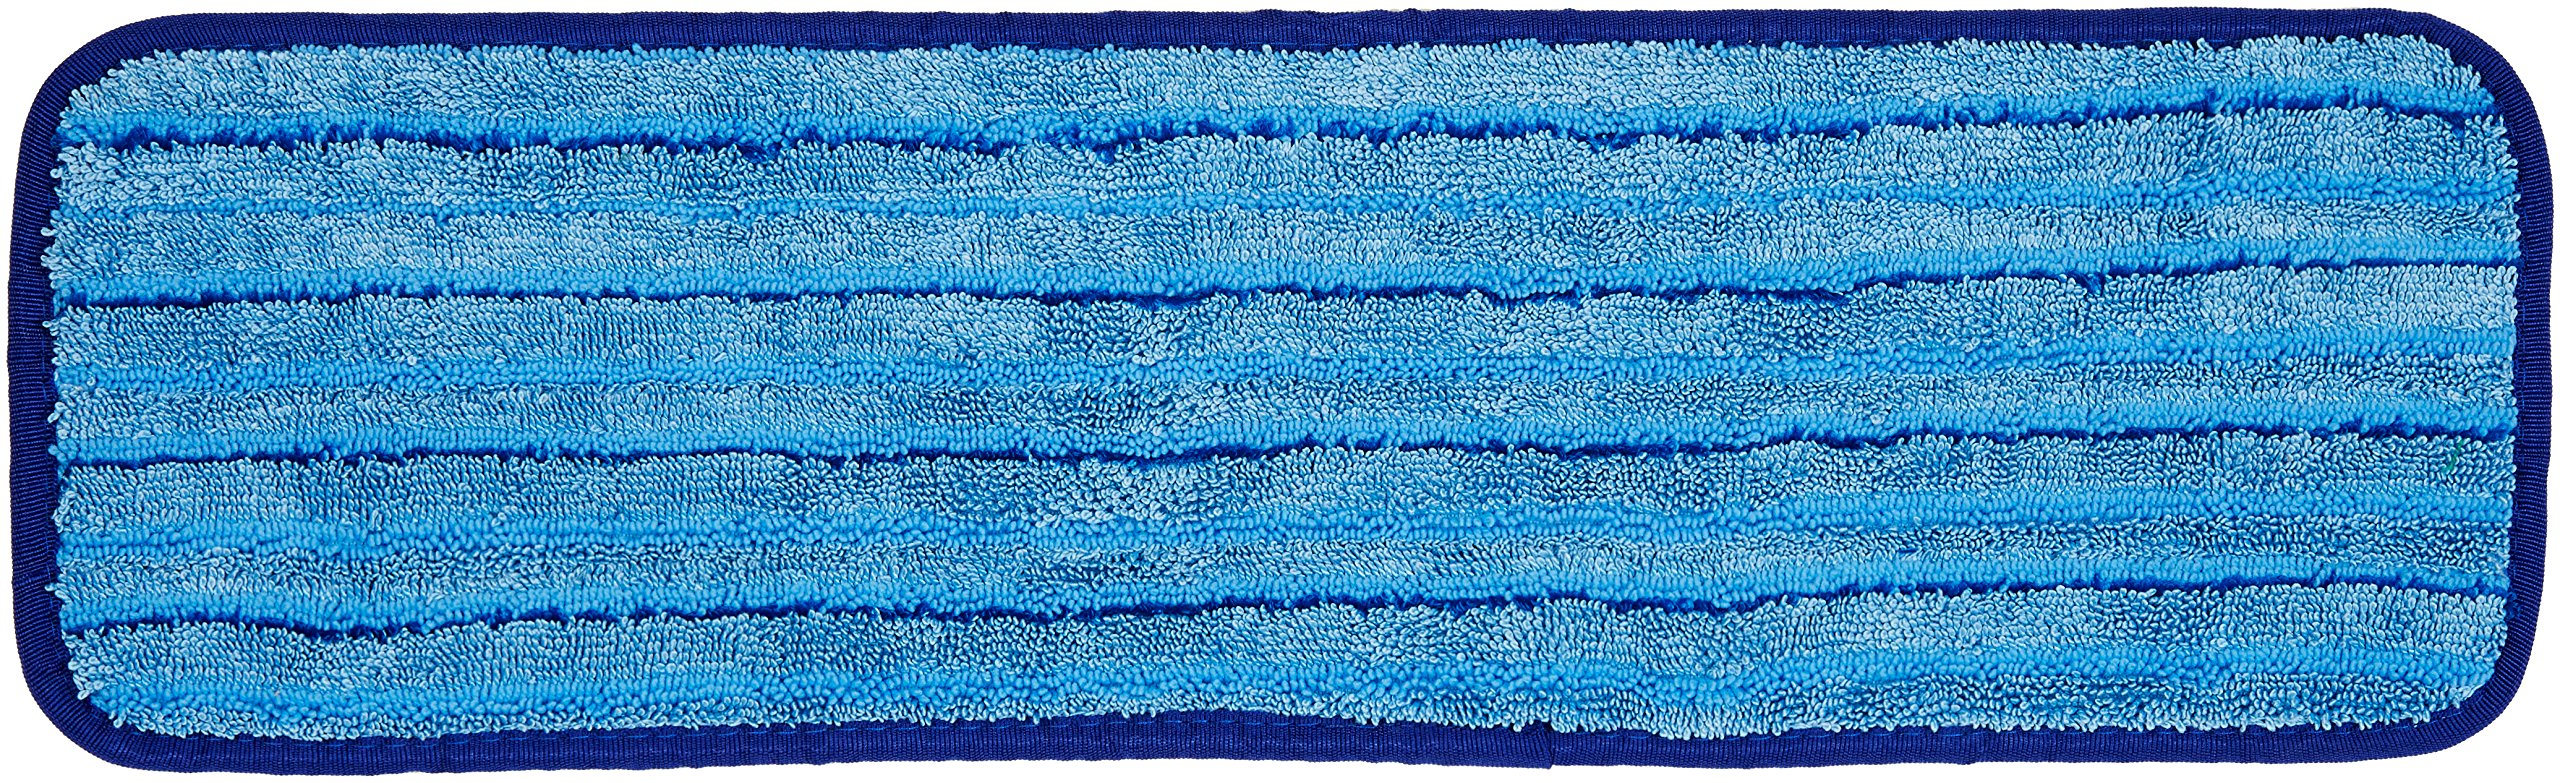 AmazonBasics Microfiber Damp Mop Cleaning Pad with Stripes, 18 Inch, 12-Pack